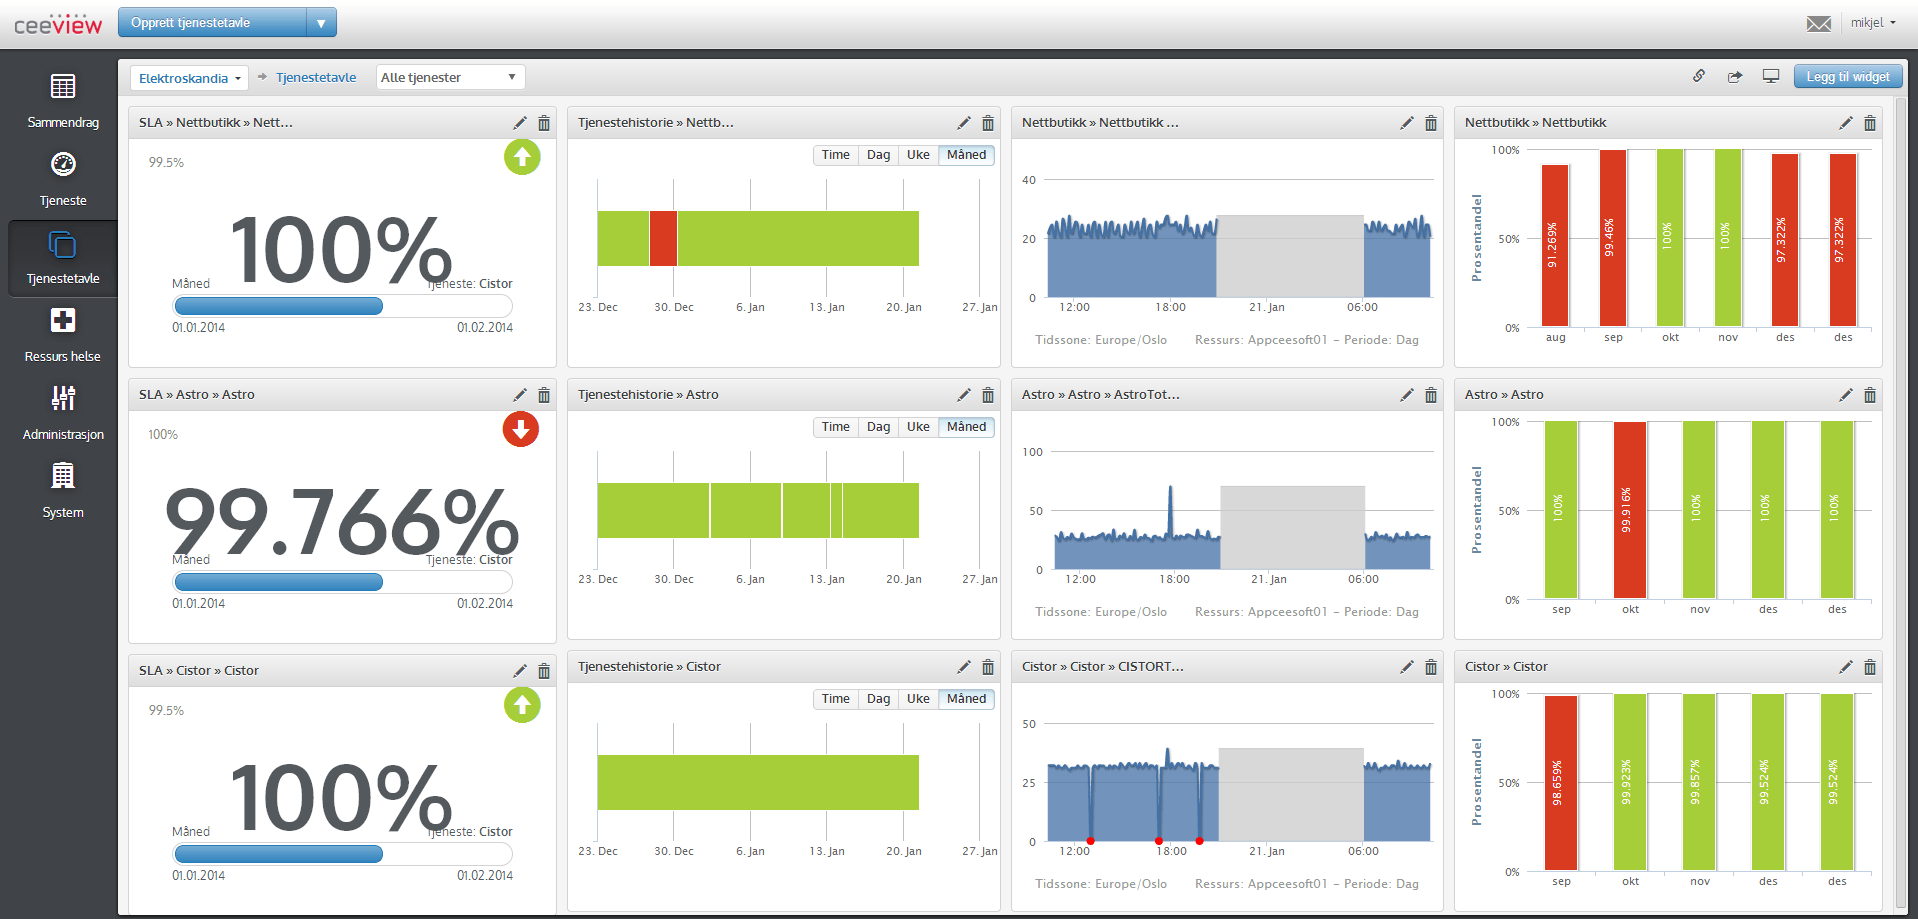 Ceeview Service Dashboard